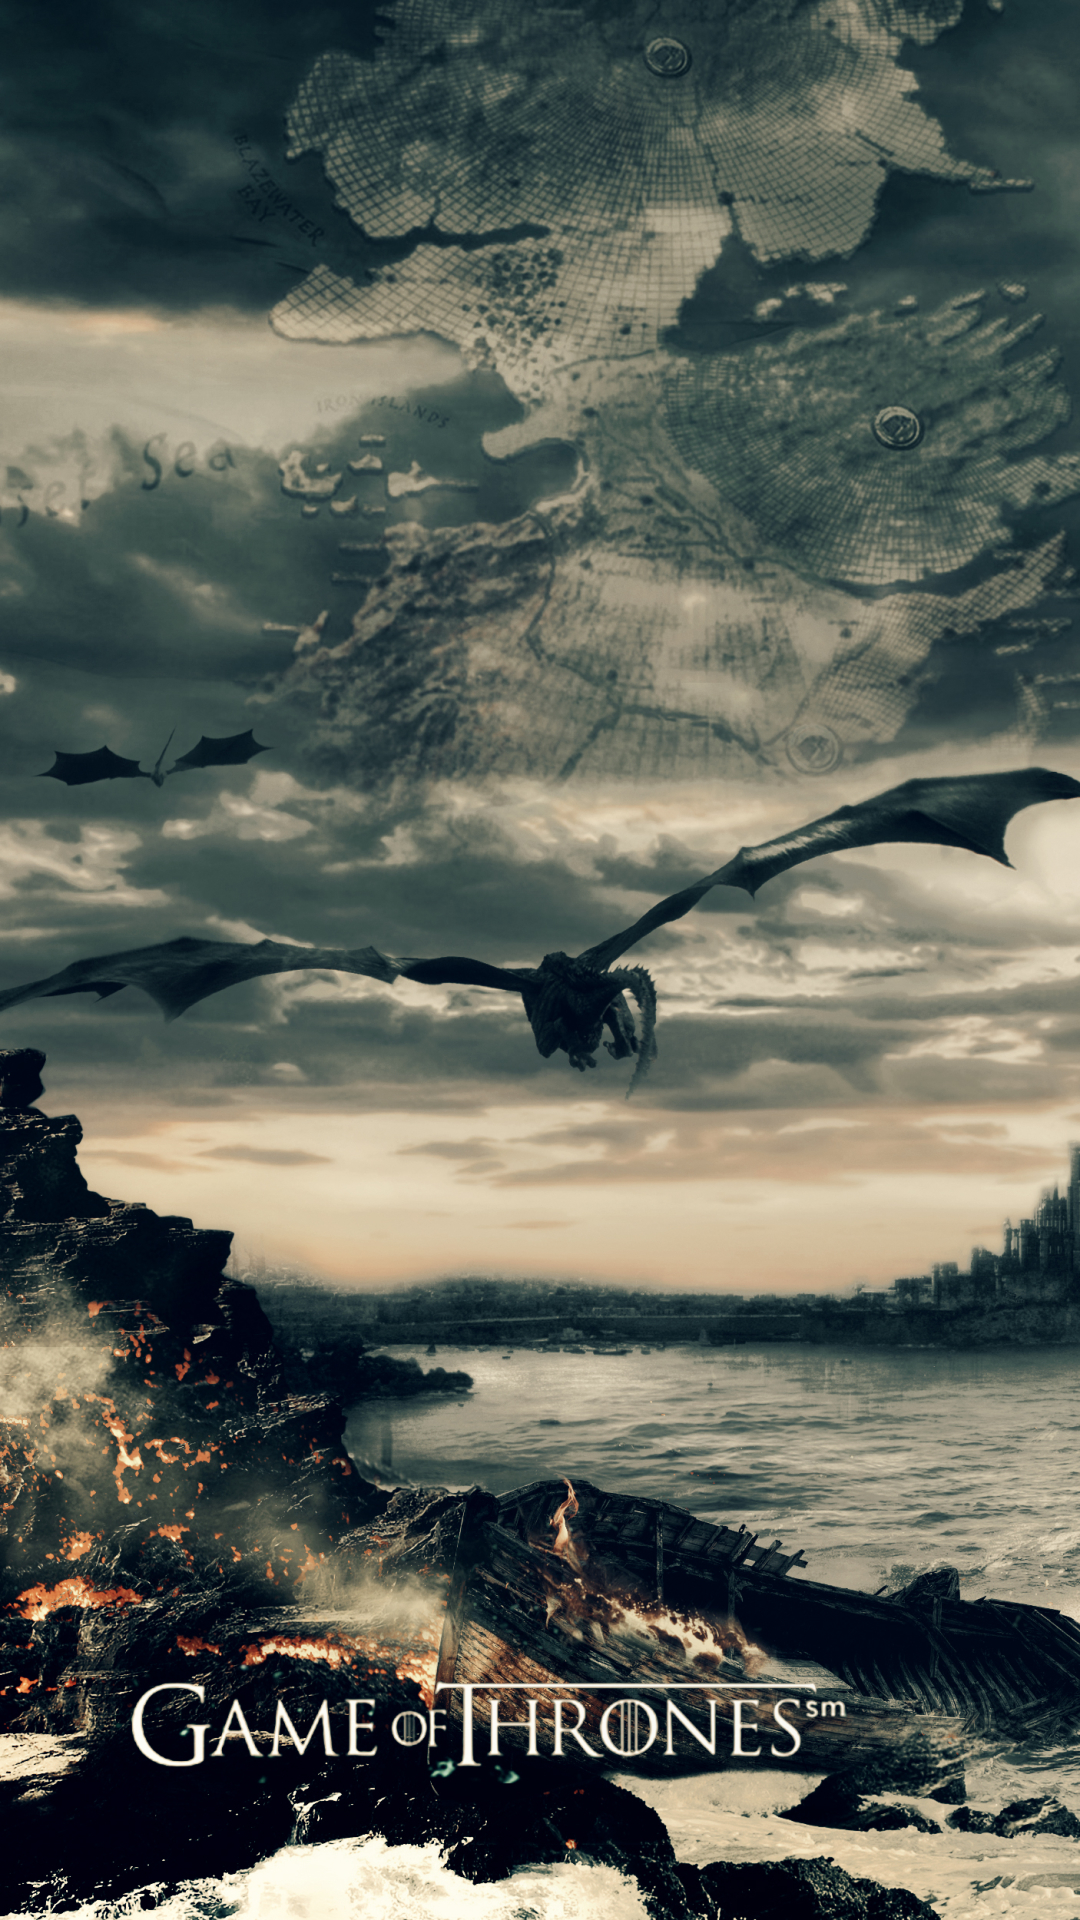 Game Of Thrones Background Hd Wallpaper, Beautiful - Daenerys Targaryen Wallpaper Pc - HD Wallpaper